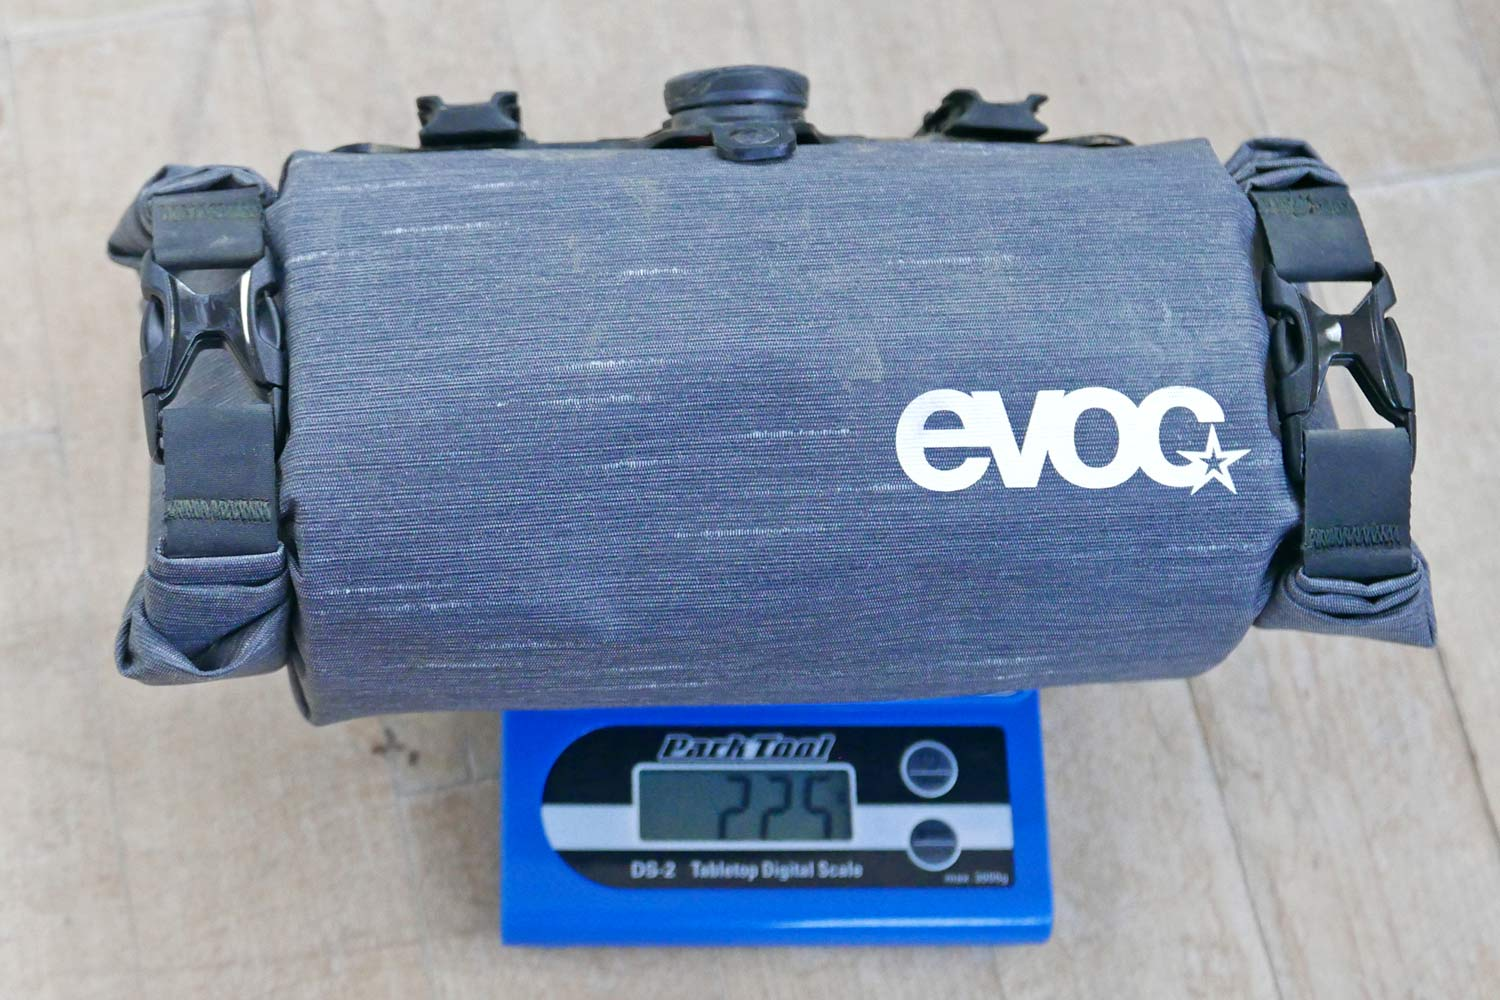 EVOC Bikepacking bags review, off-road riding MTB gravel adventure packs with Boa dial mounts, actual weight